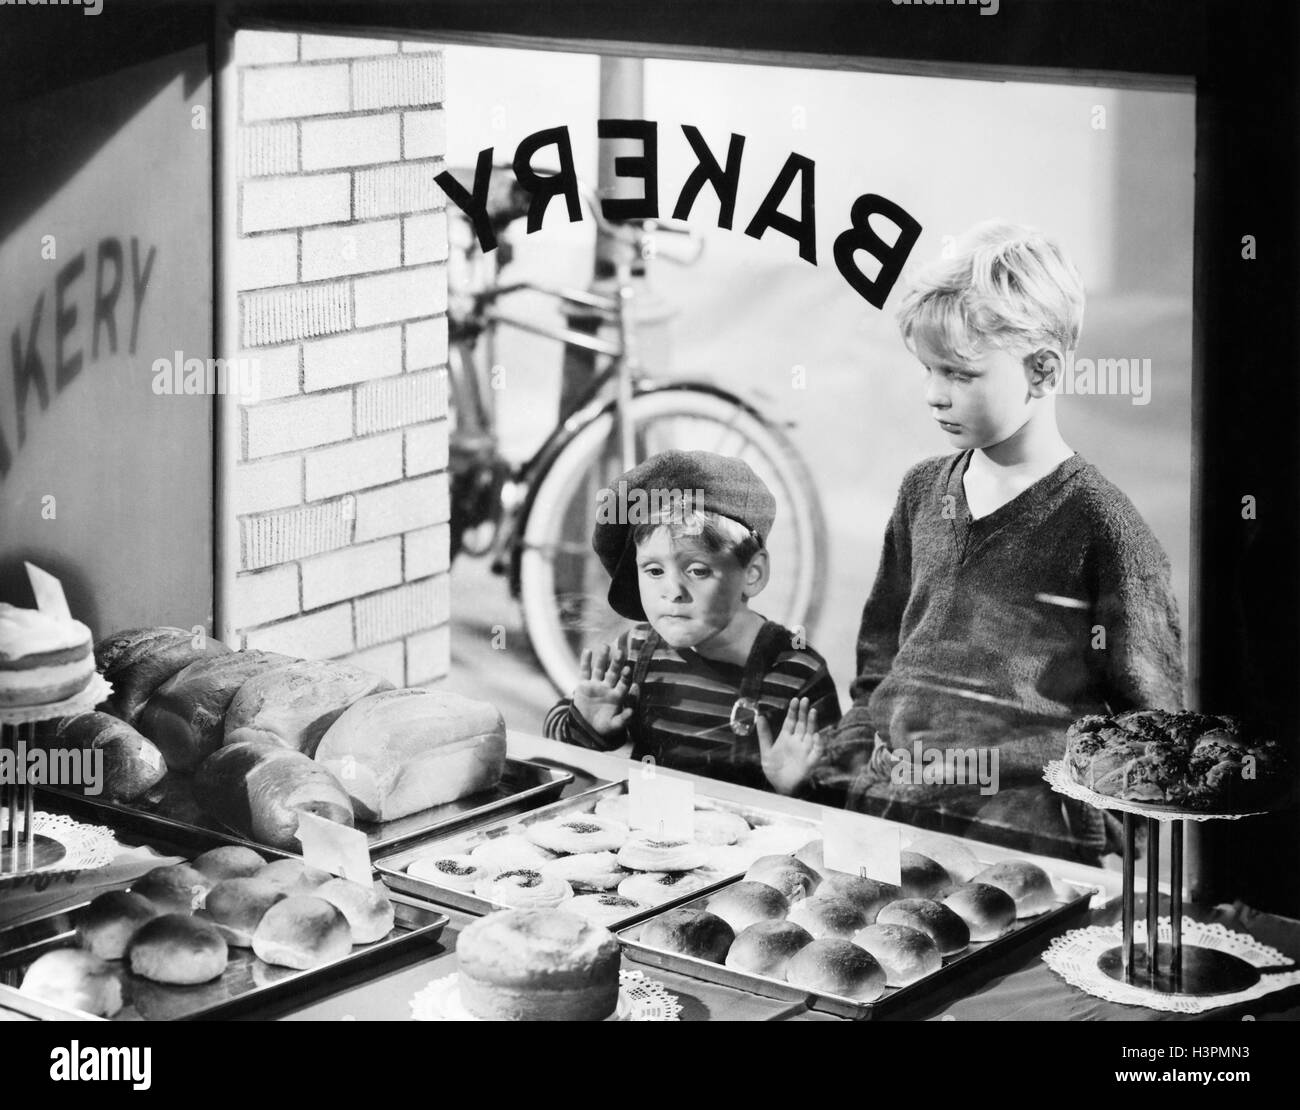 1930s 1940s TWO BOYS LOOKING IN BAKERY SHOP WINDOW AT DESSERTS ONE BOY PRESSING HANDS AND NOSE AGAINST WINDOW Stock Photo